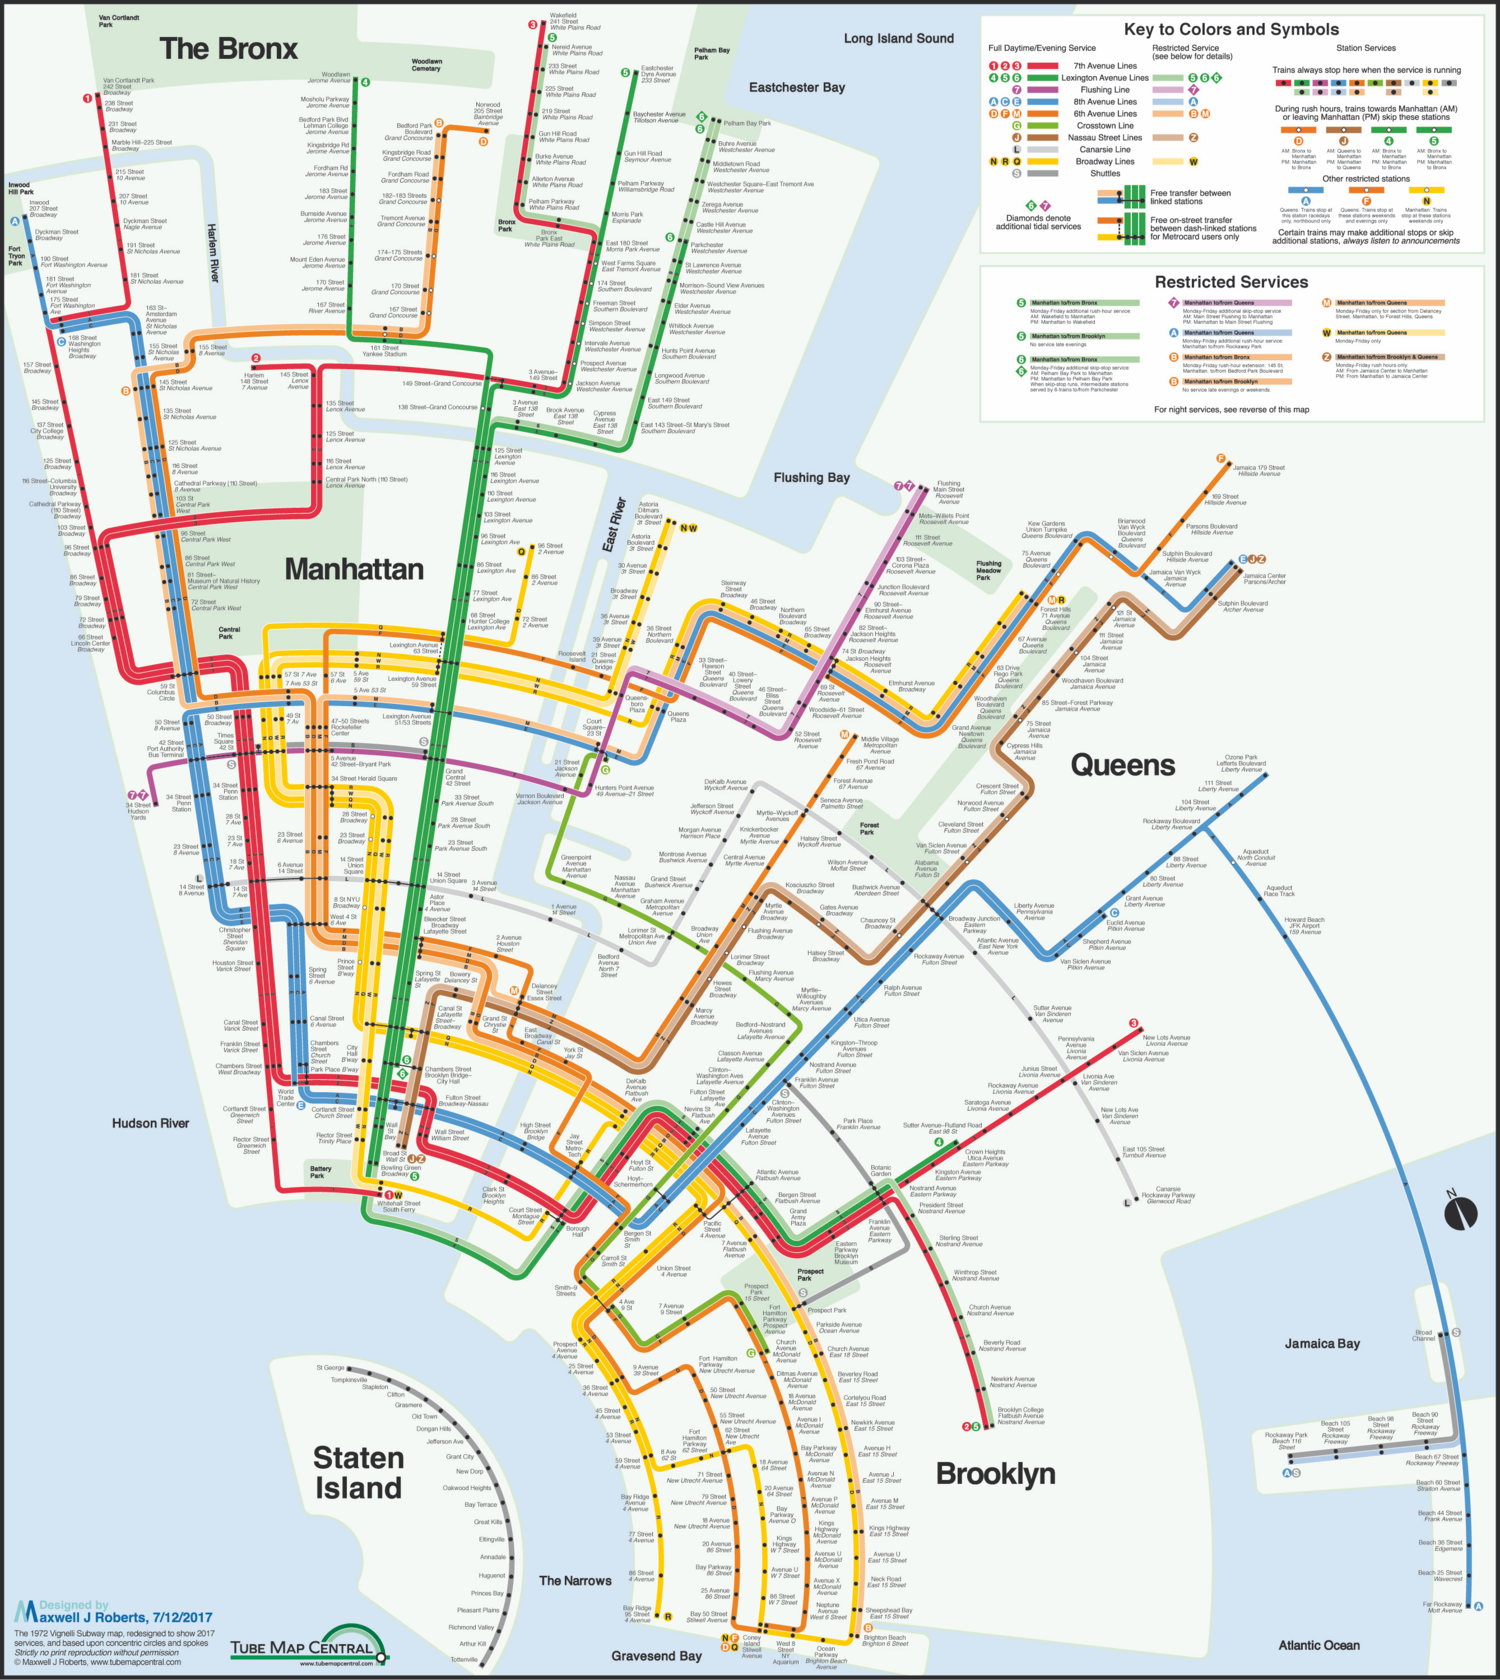 Check Out This Vignelli Inspired New York City Subway Map Made of